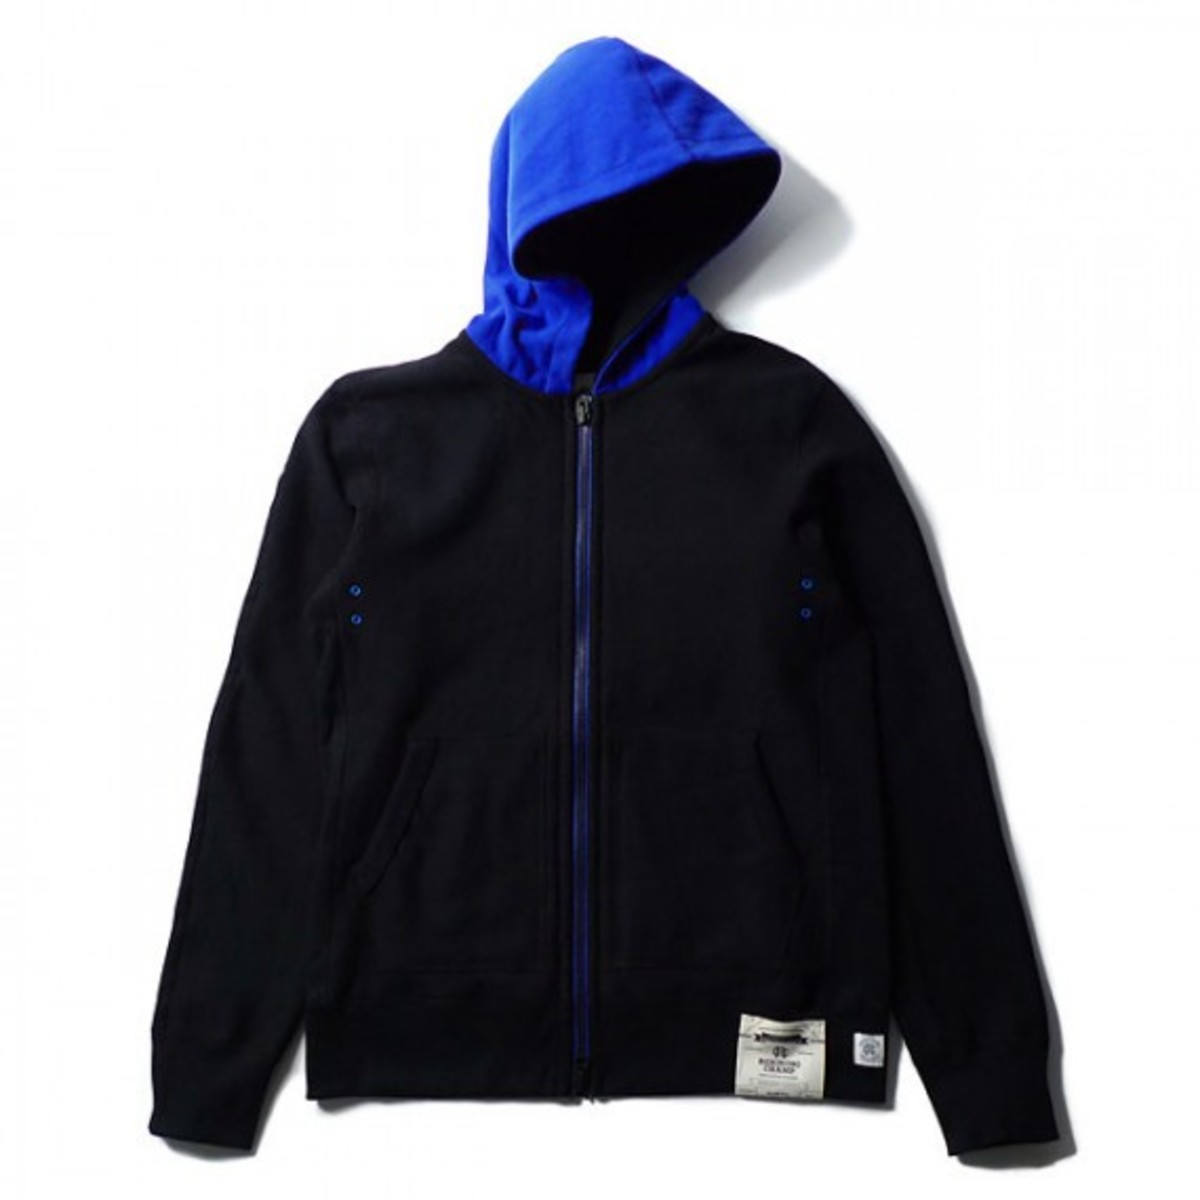 reigning-champ-fall-winter-2010-collection-delivery-3